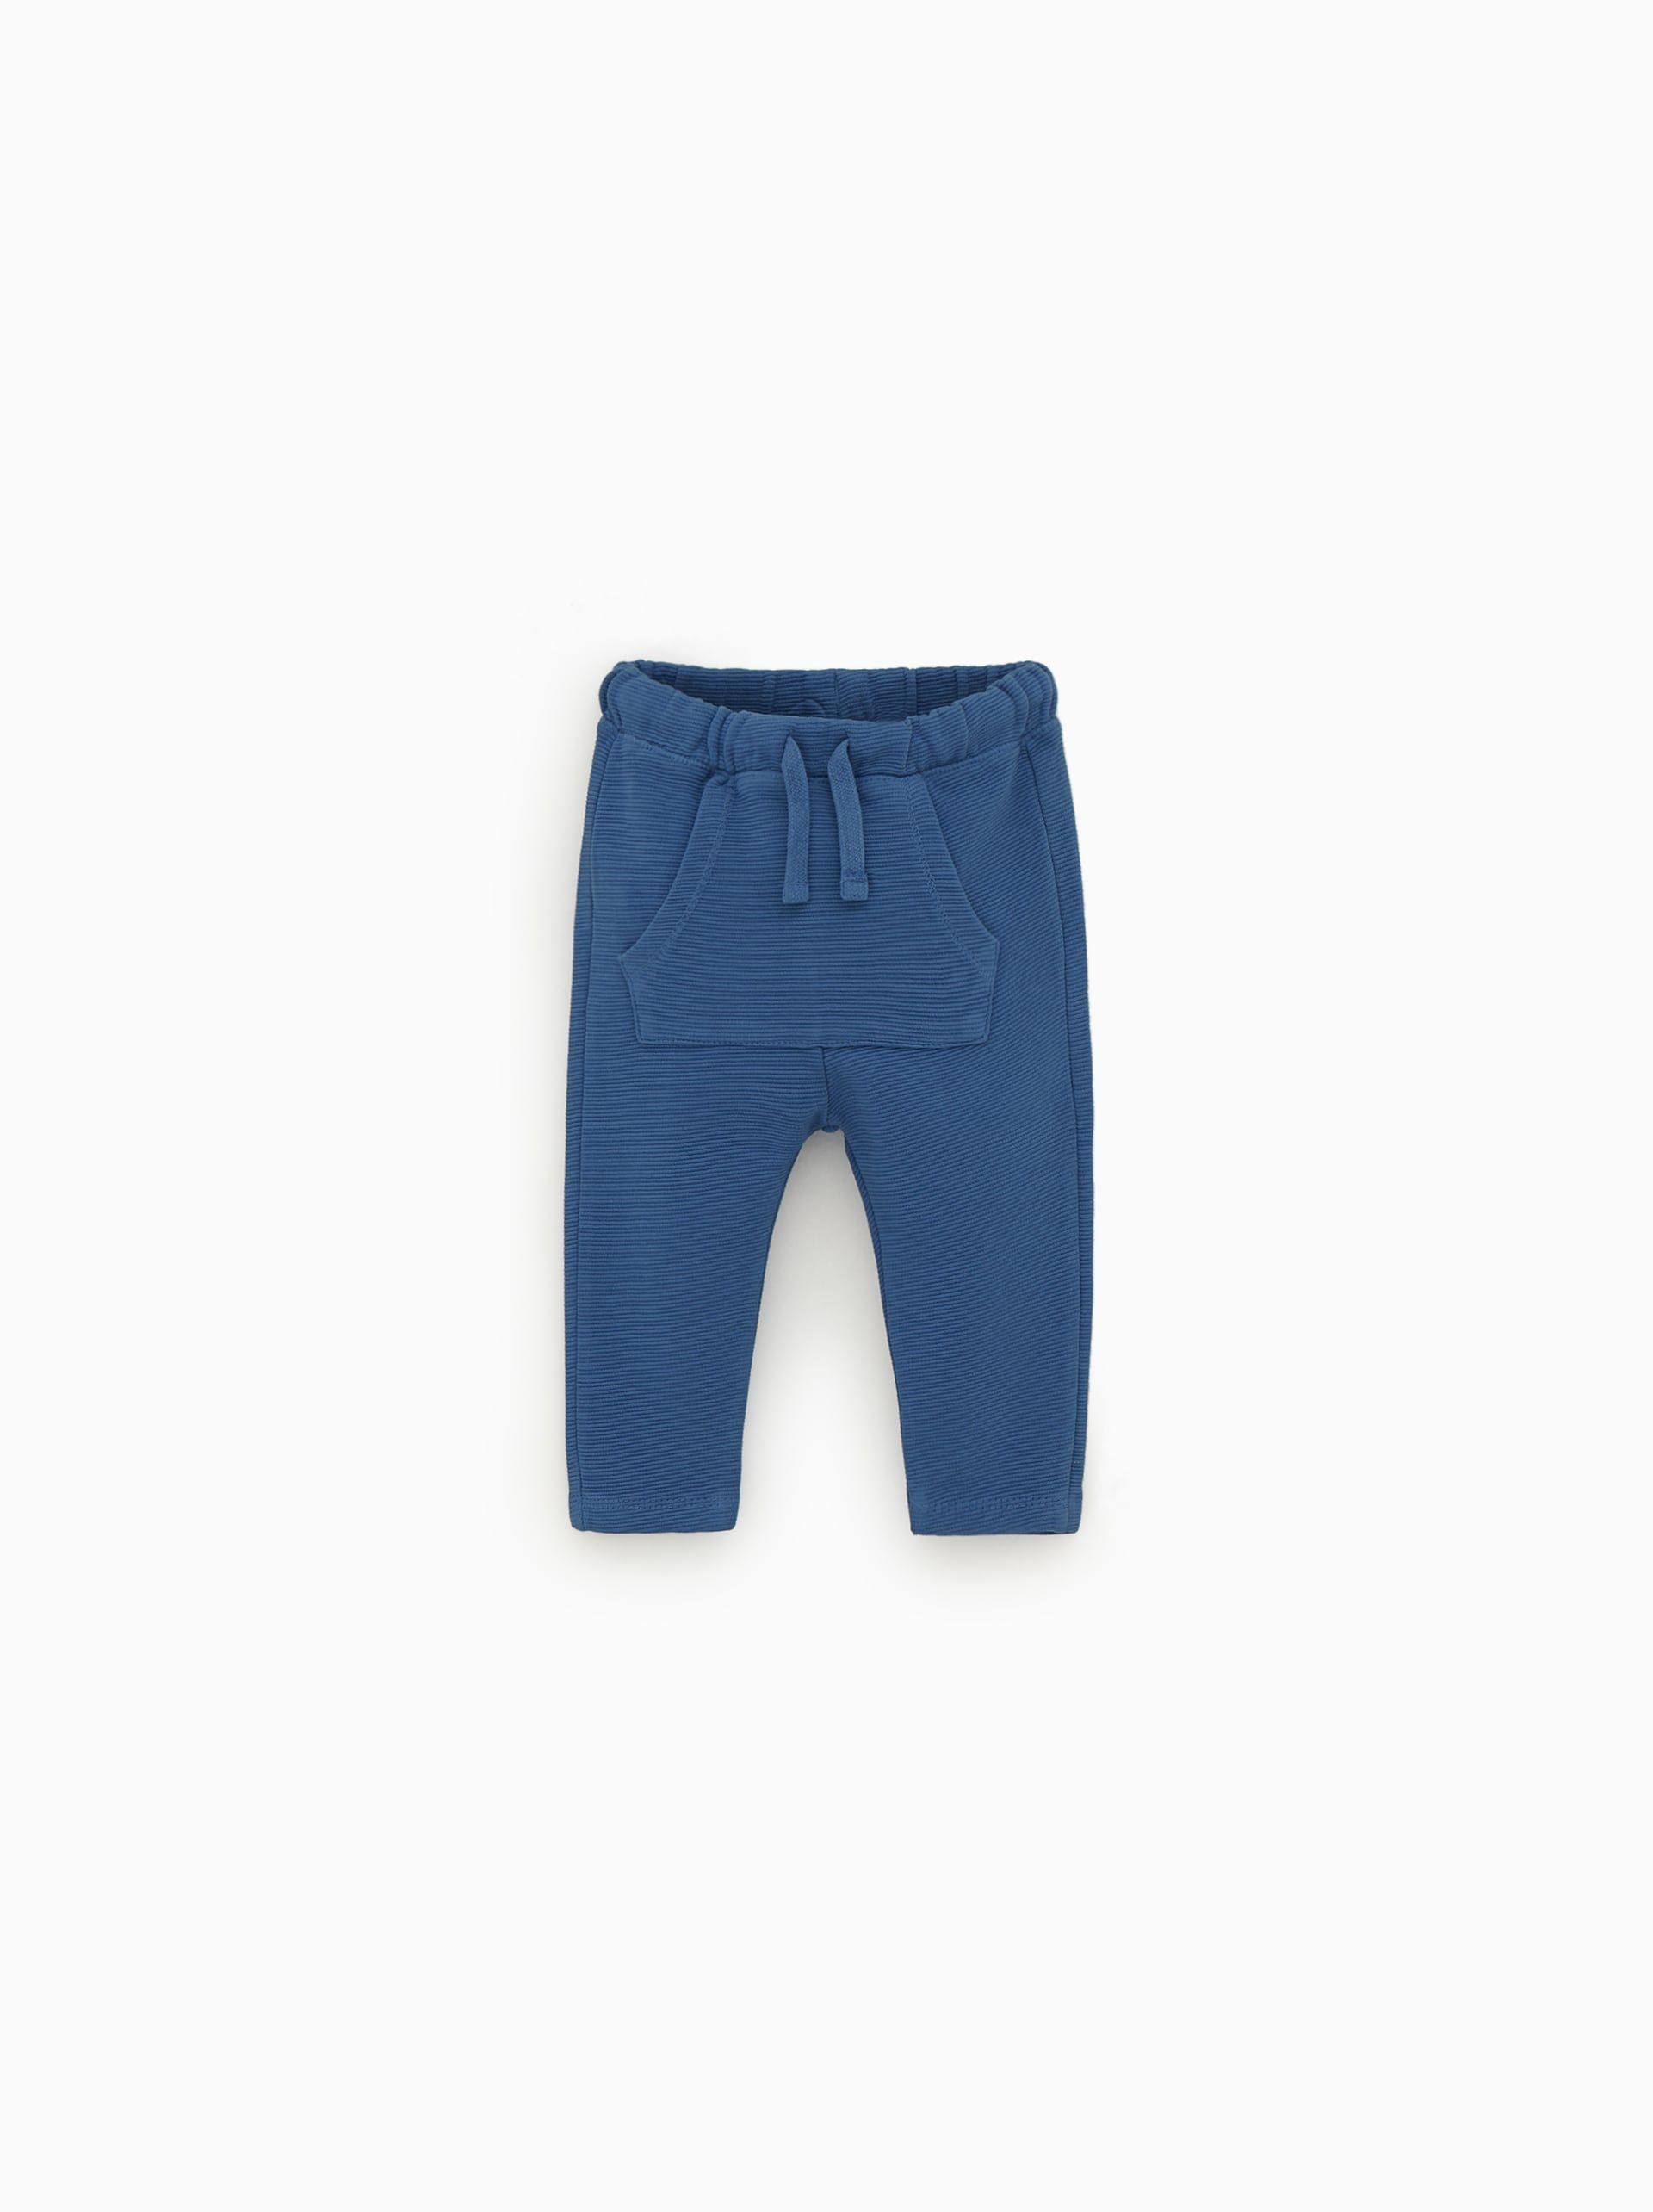 c2723d8e OTTOMAN PANTS WITH POUCH POCKET - NEW IN-BABY BOY | 3 mth - 4 yrs-KIDS |  ZARA United States